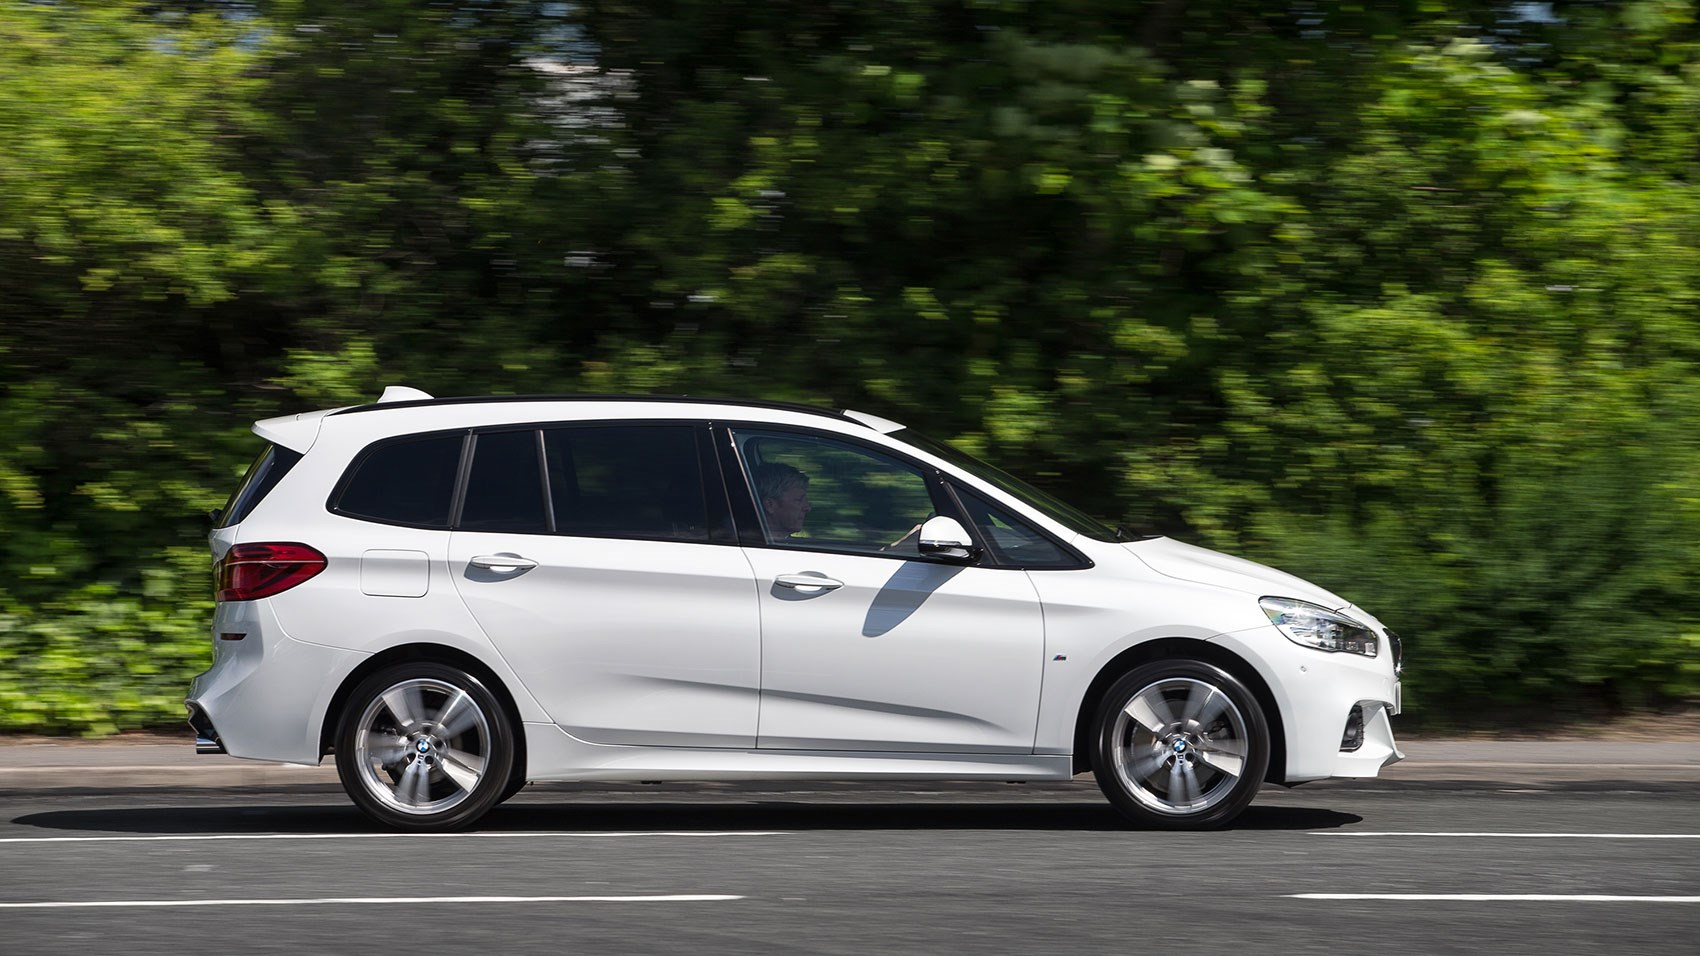 Bmw 220i gran tourer m sport package 2015 wallpapers and hd images - Bmw 2 Series Gran Tourer 220d Xdrive M Sport 2015 Review By Car Magazine